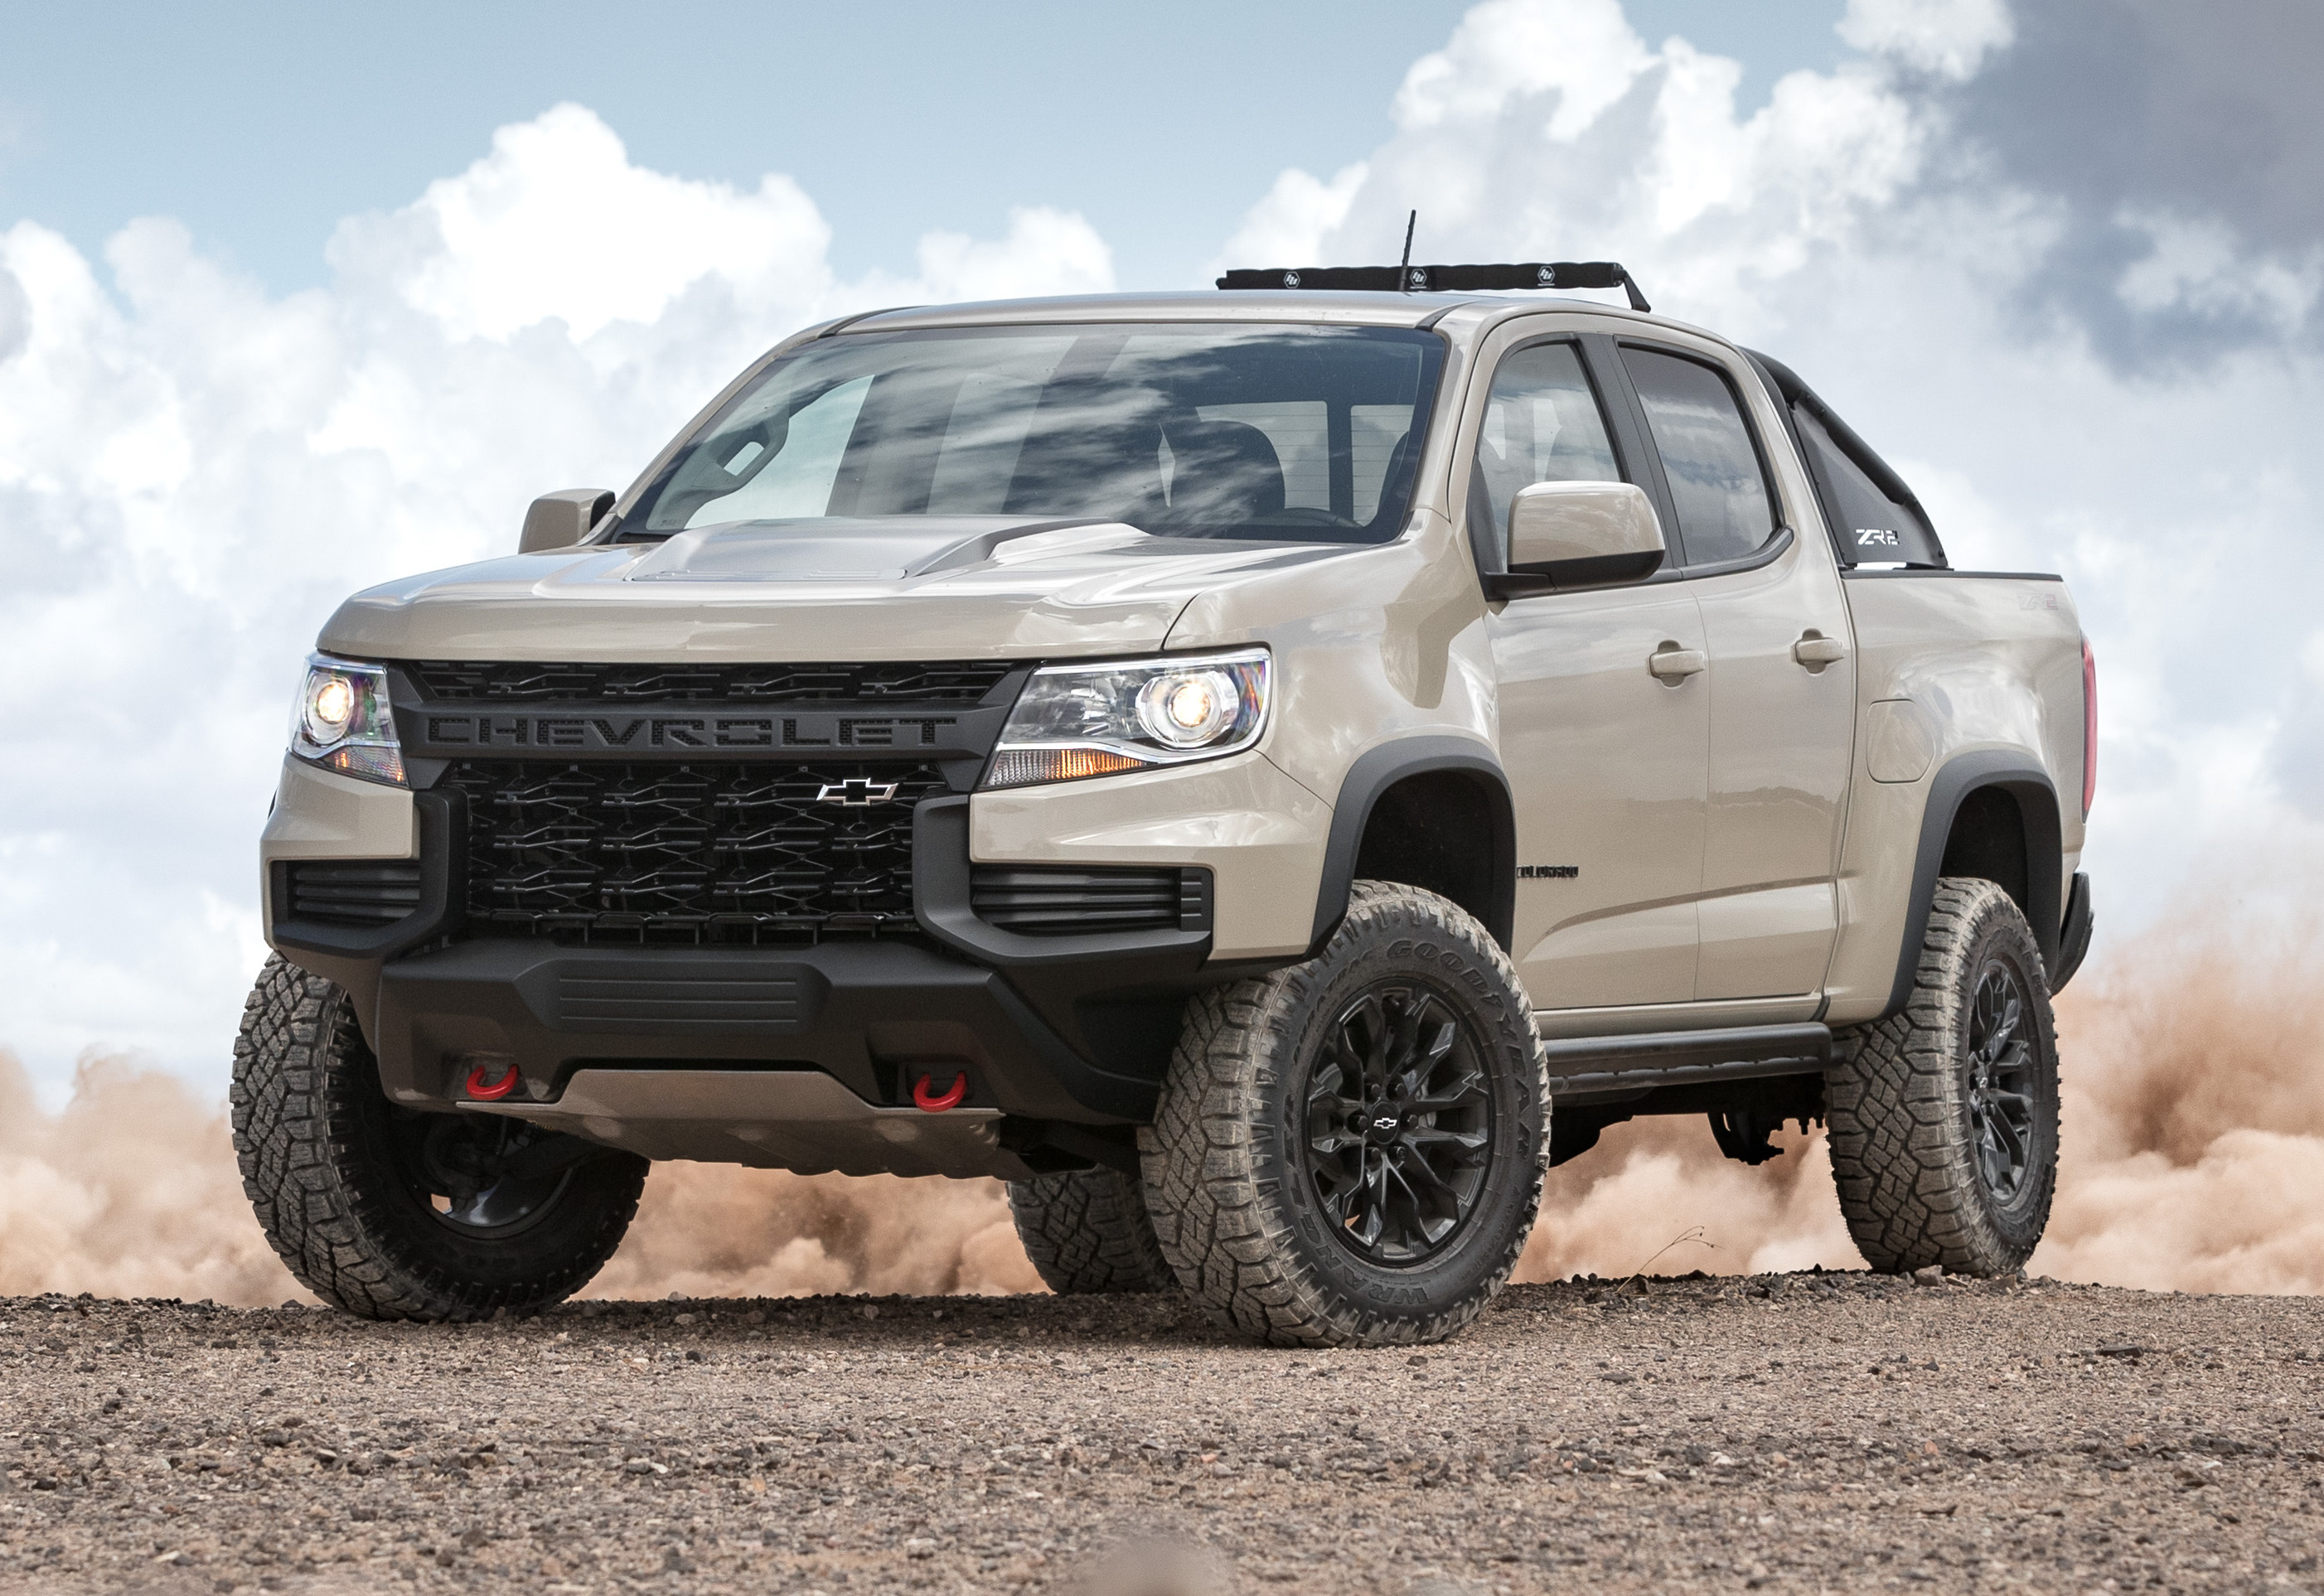 2021 Chevy Colorado ZR2 gets new front end design